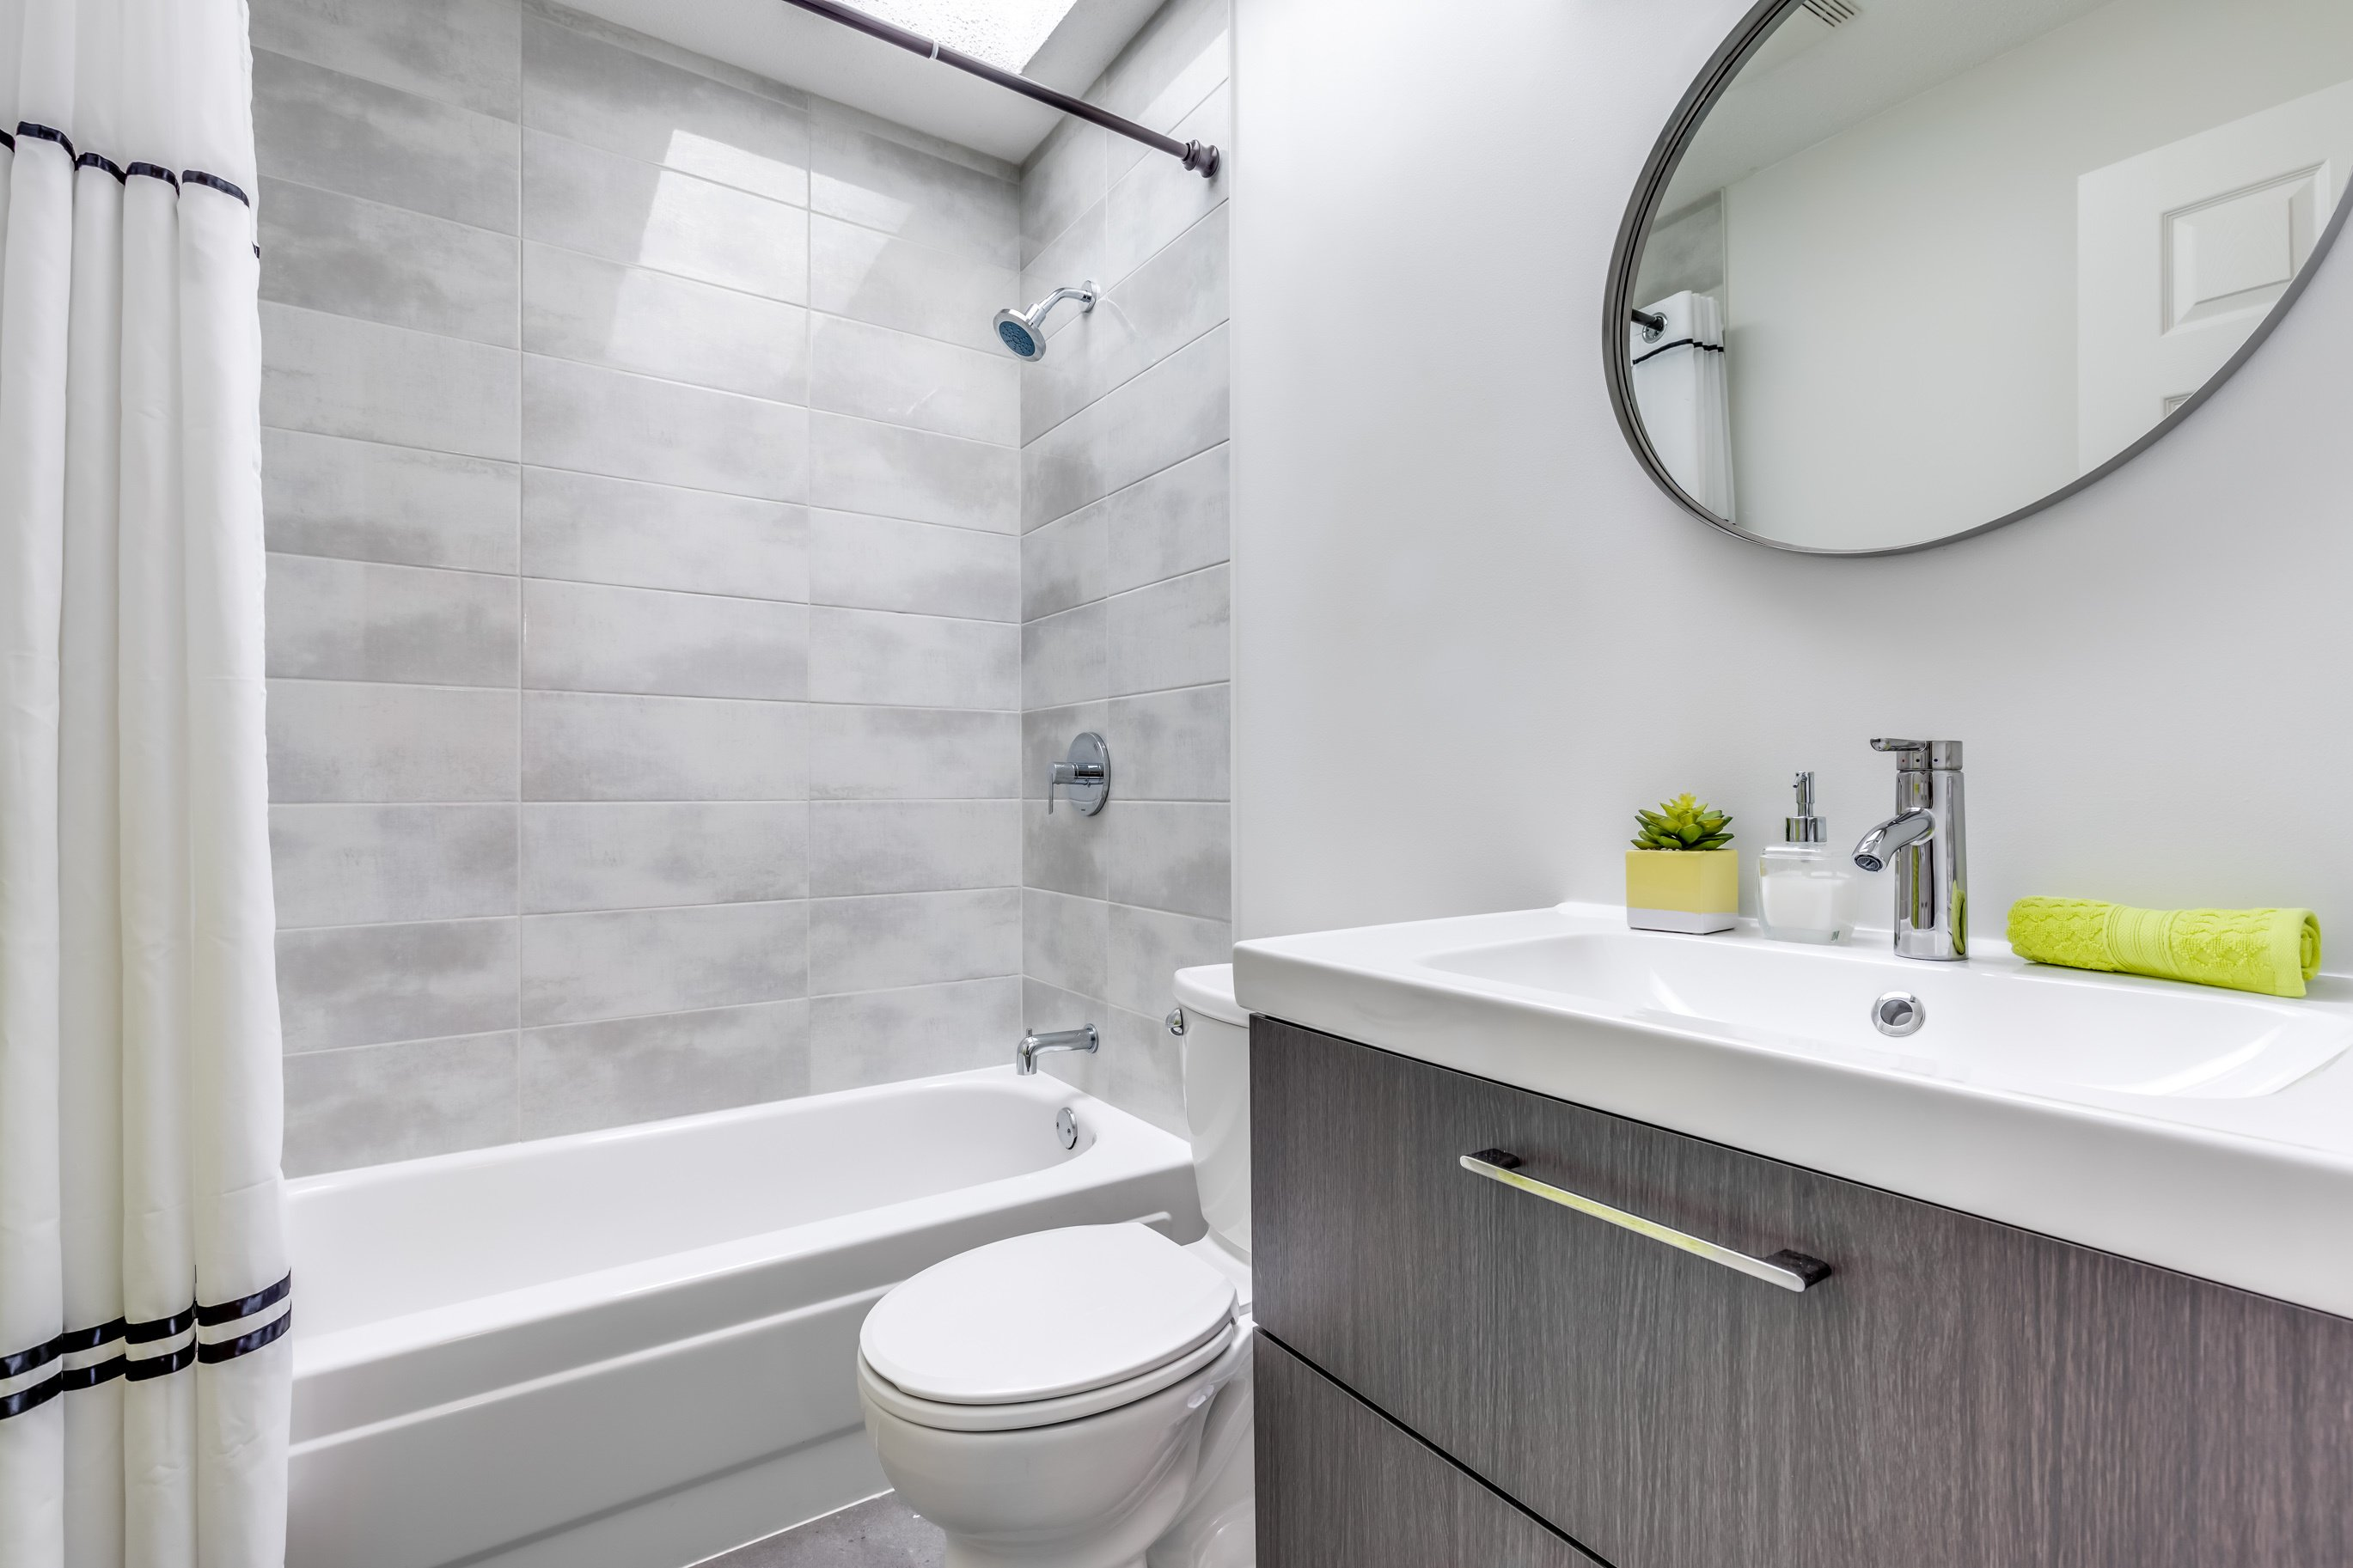 Small Bathroom remodel features beautiful marble tile in the shower with a new toilet and modern vanity with contemporary hardware.